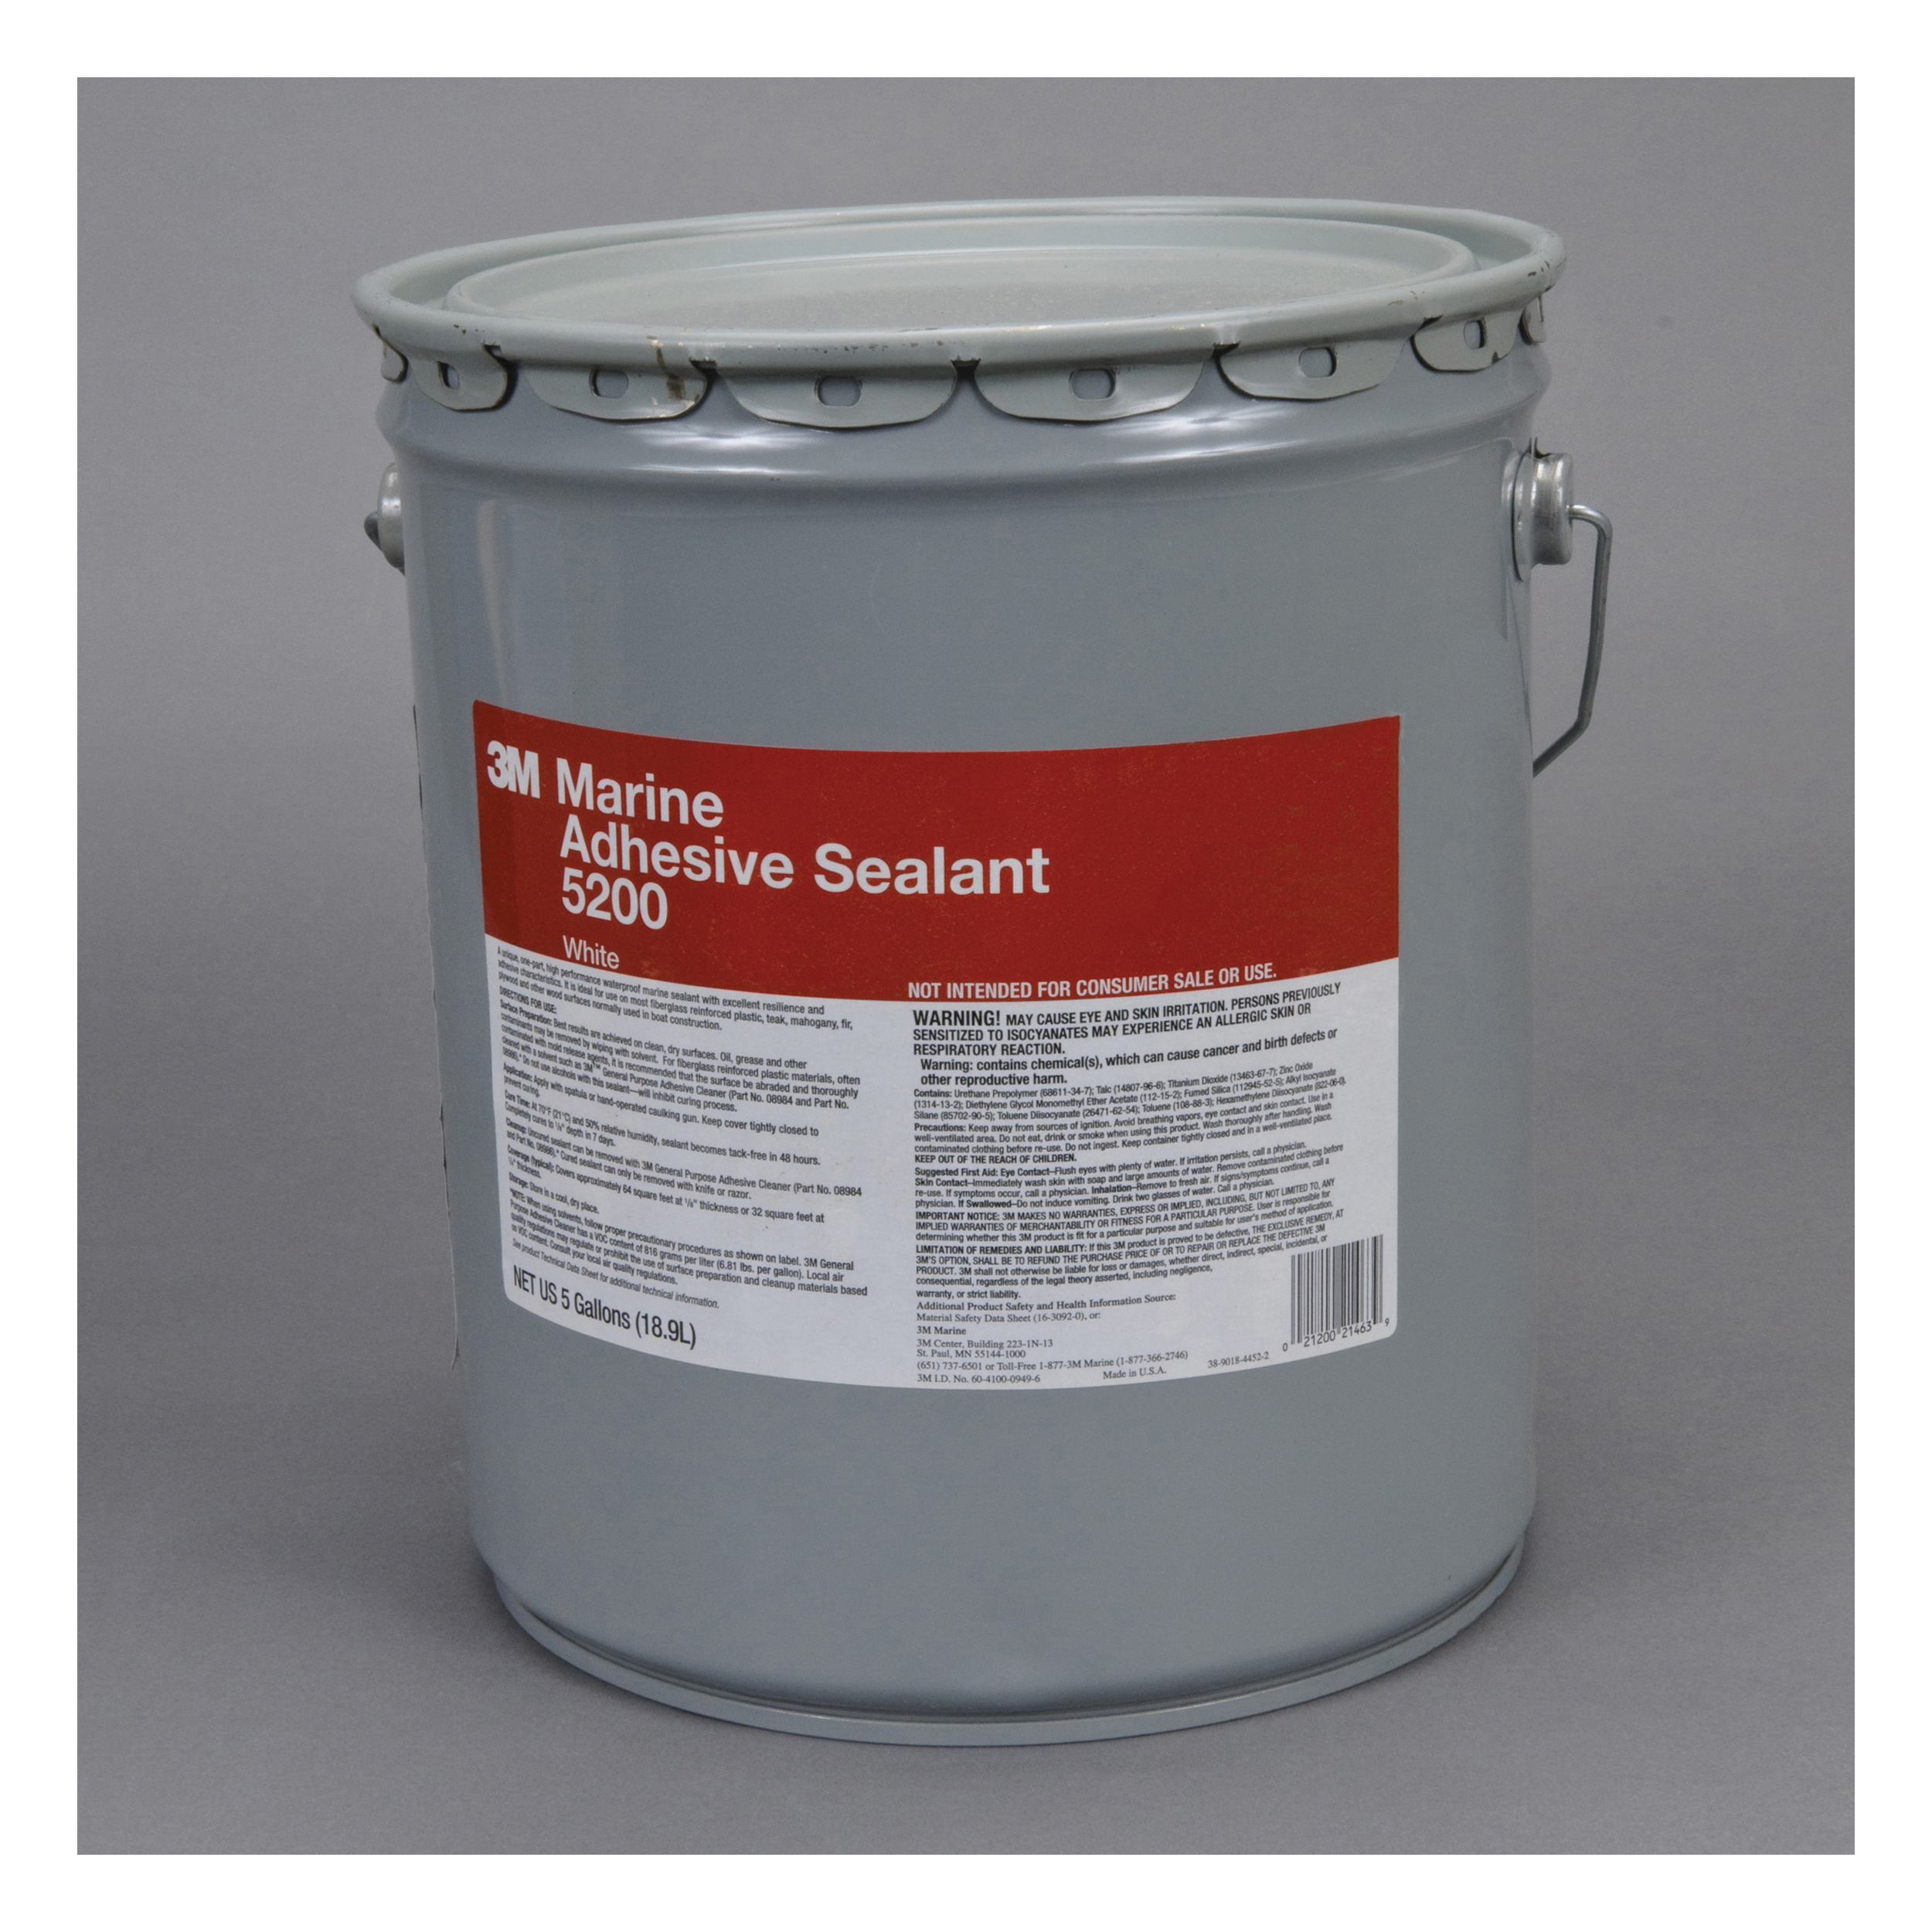 3M™ 021200-21463 Very High Strength Adhesive Sealant, 5 gal Pail, White, Polyurethane Base